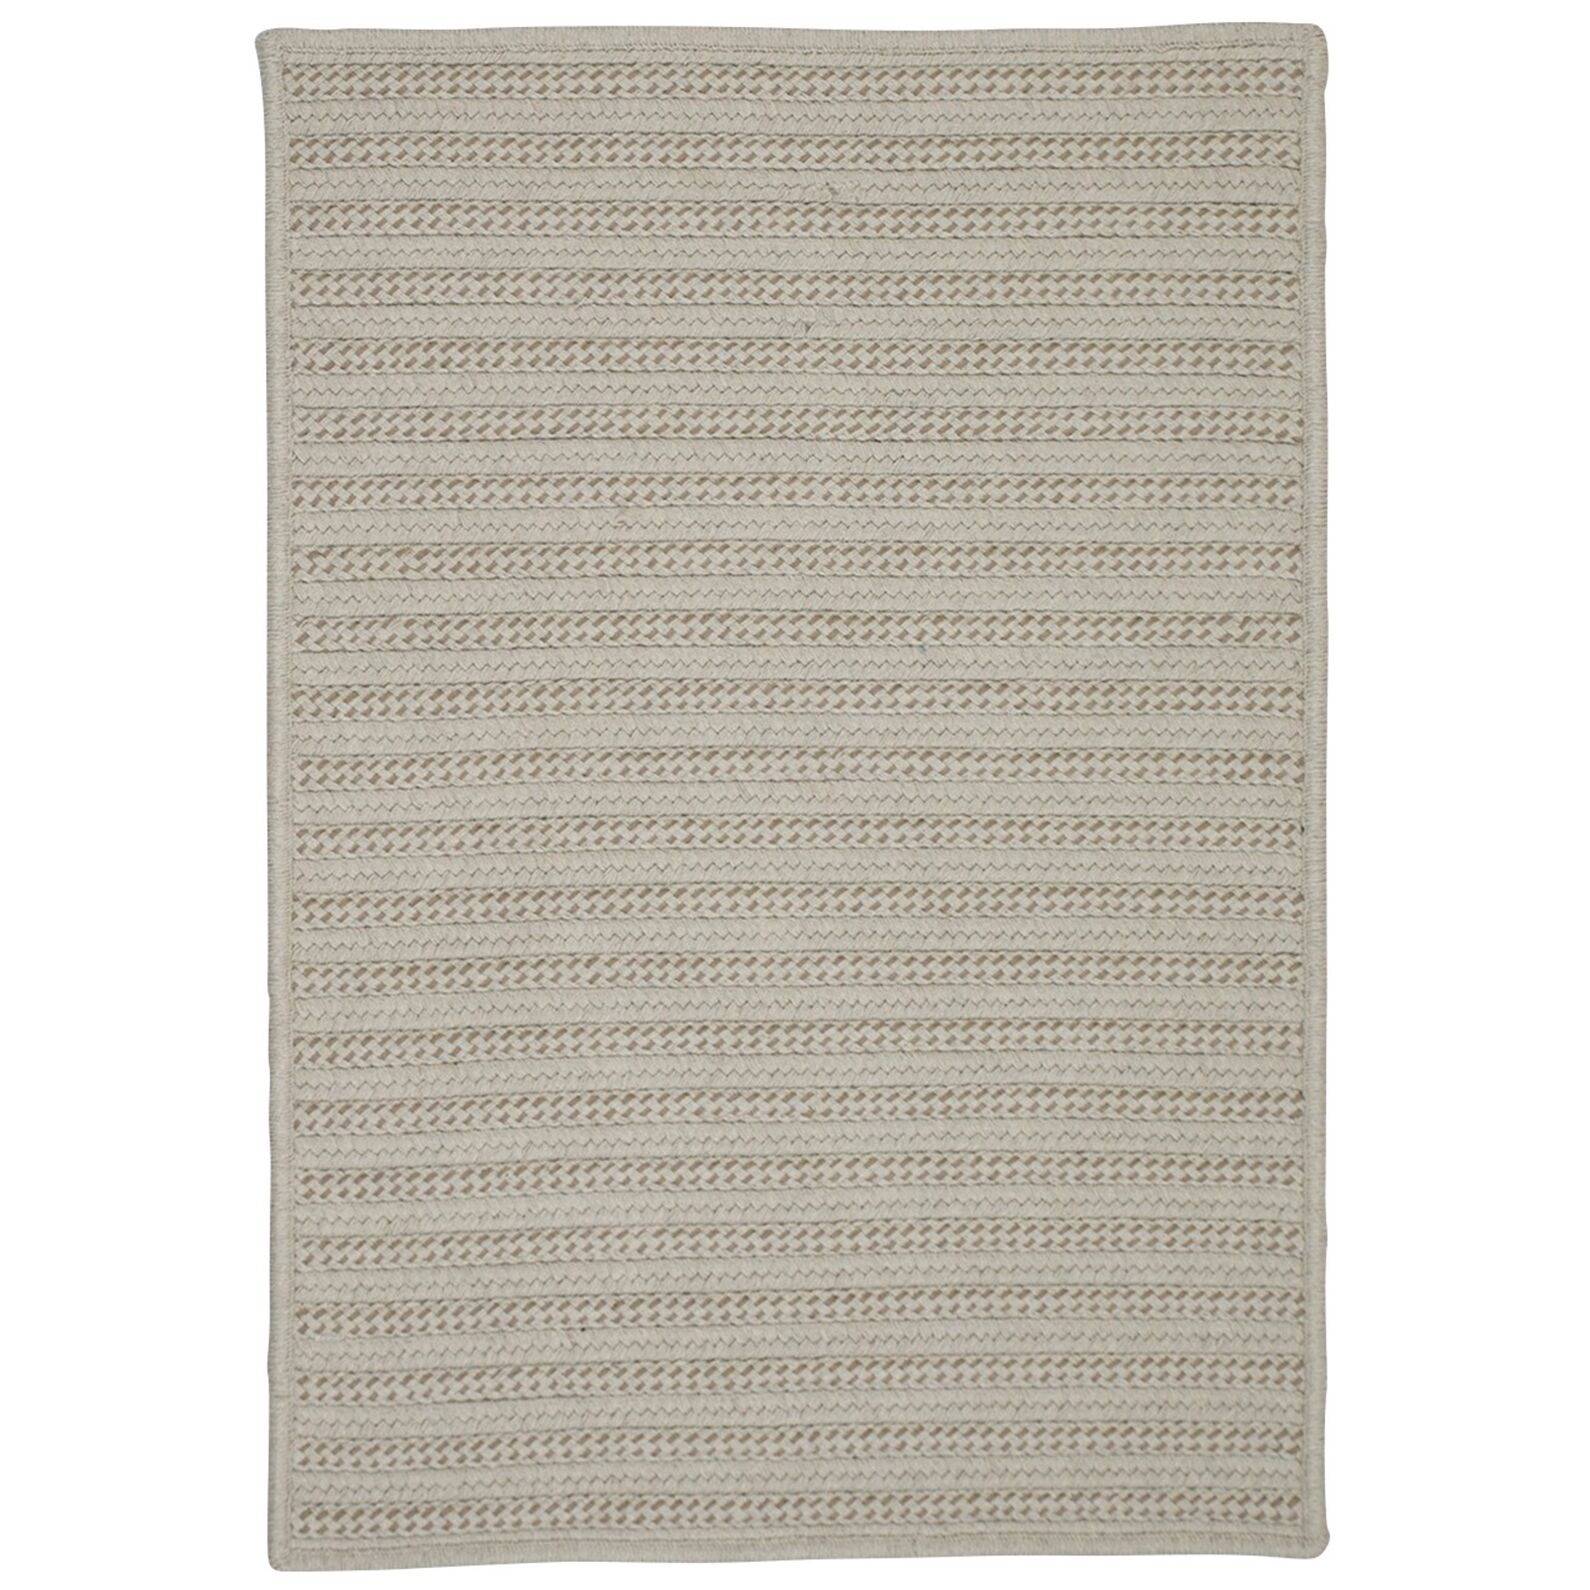 Tidewater Hand-Woven Natural Indoor/Outdoor Area Rug Rug Size: 8' x 10'